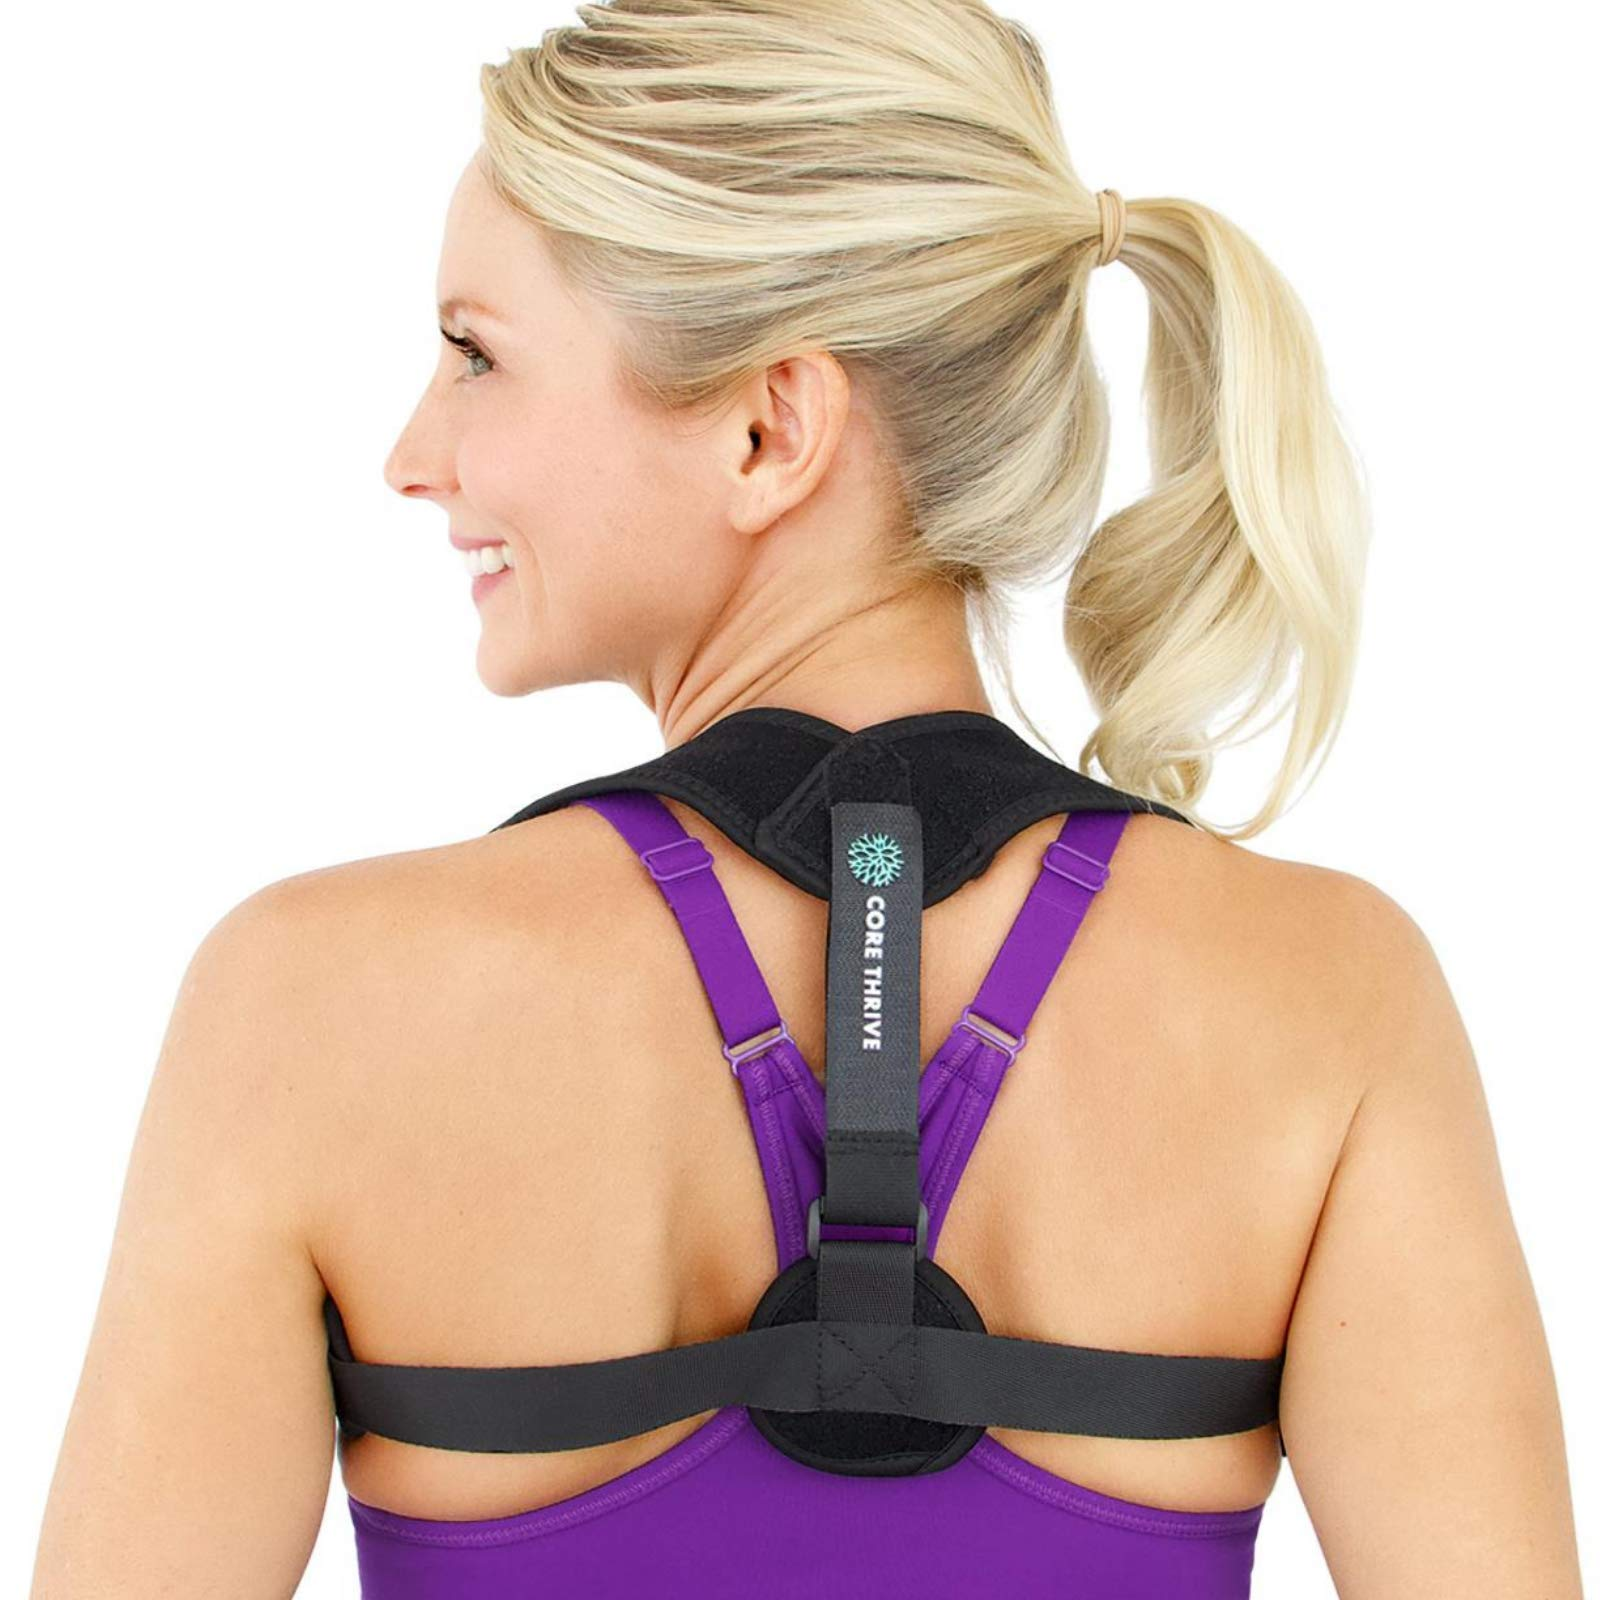 Core Thrive Posture Brace for Women & Men - Comfortable and Easy to Use Upper Back Posture Corrector for Thoracic Kyphosis, Scoliosis, and Neck Pain Relief - Improve Posture and Align Your Spine